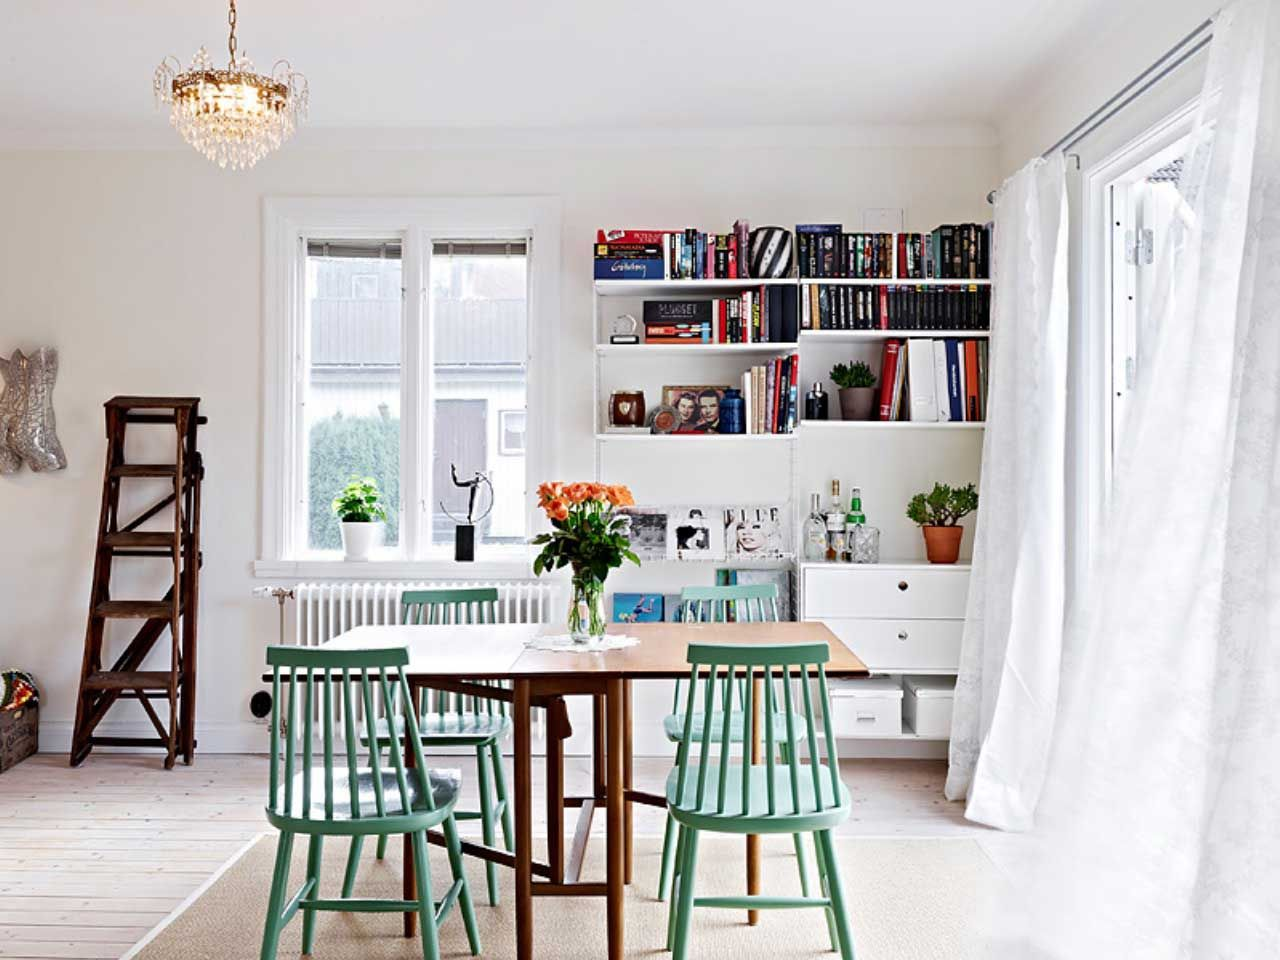 Calm Dining Room Ideas For Nursing Homes With Relaxing Celadon Turquoise Chairs Design And Traditional Retangle